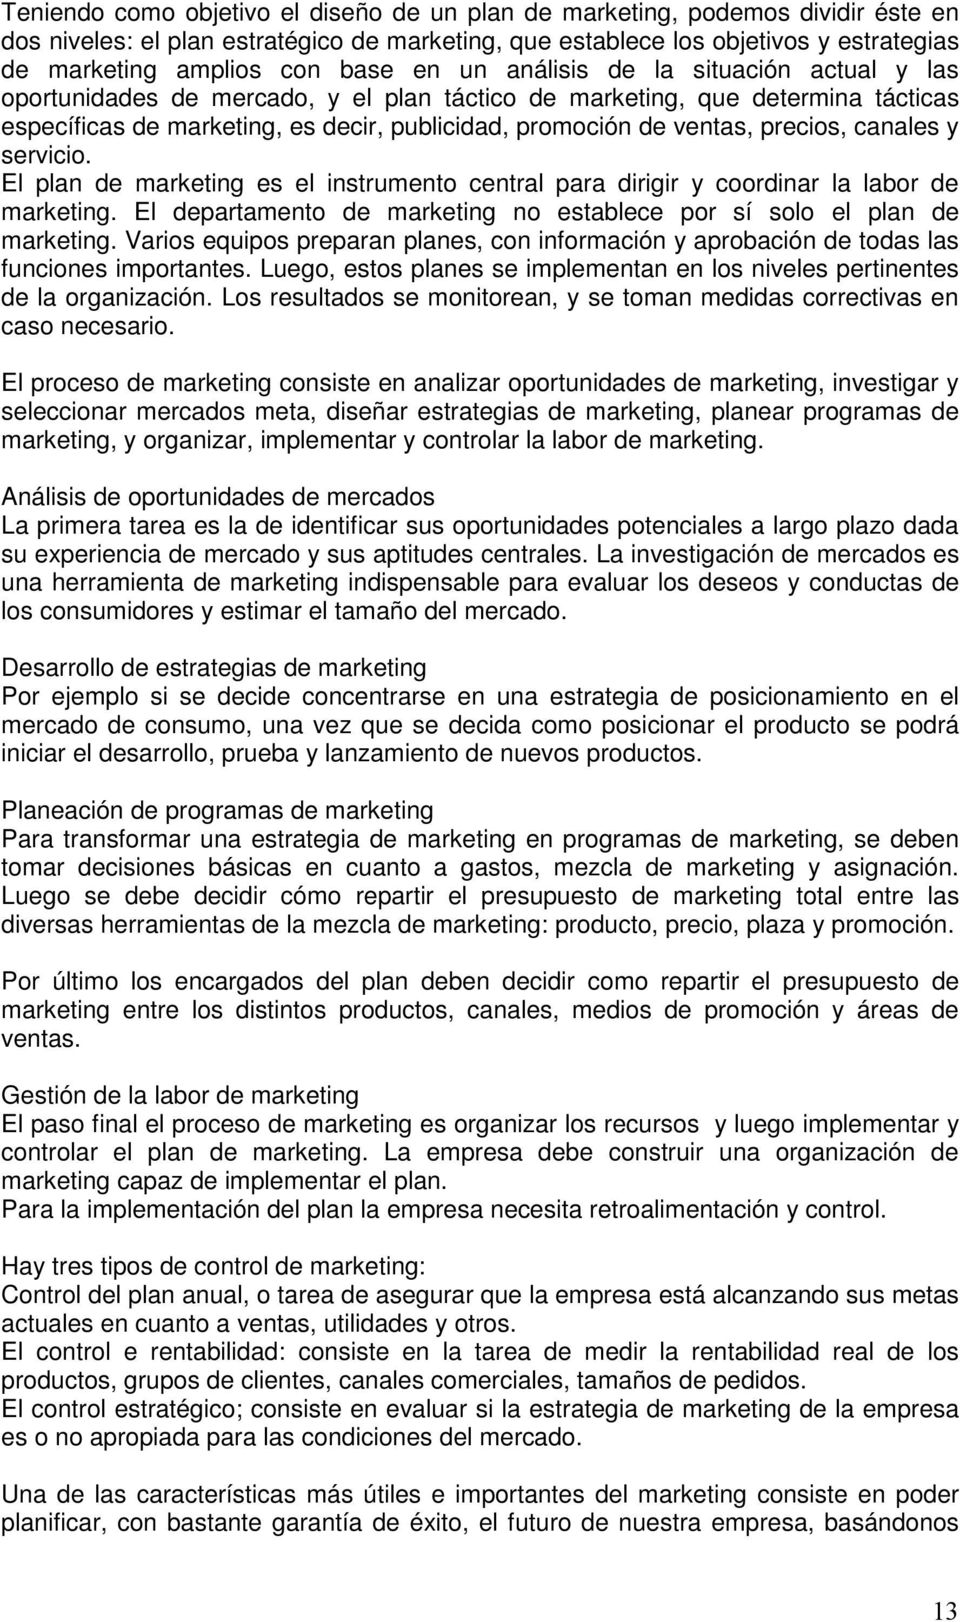 precios, canales y servicio. El plan de marketing es el instrumento central para dirigir y coordinar la labor de marketing. El departamento de marketing no establece por sí solo el plan de marketing.